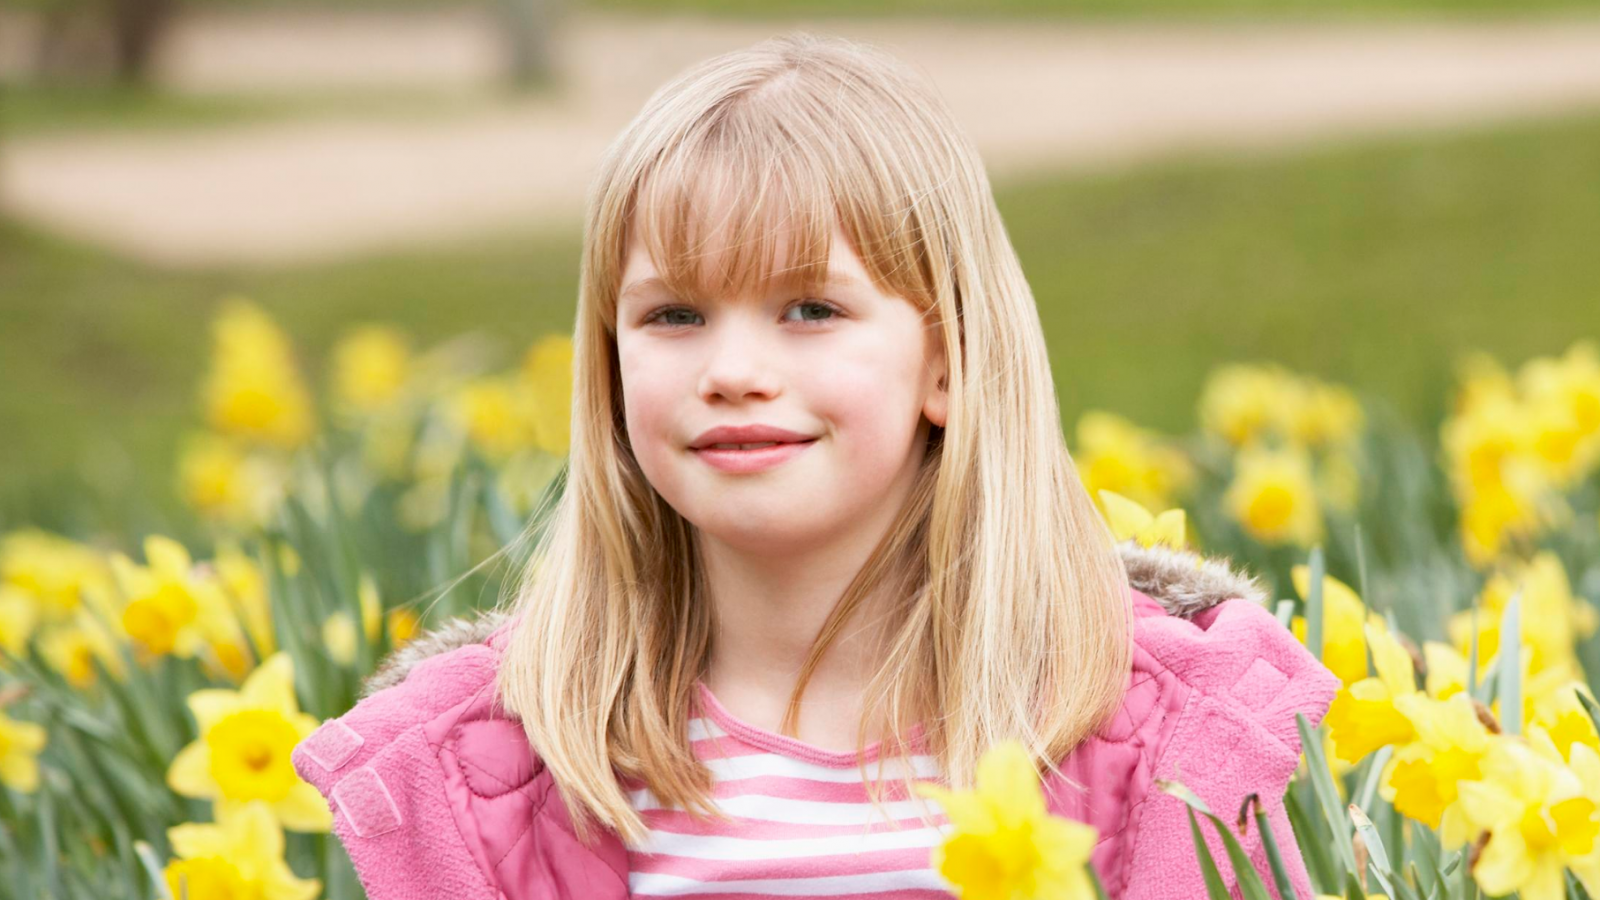 Girl surrounded by daffodils